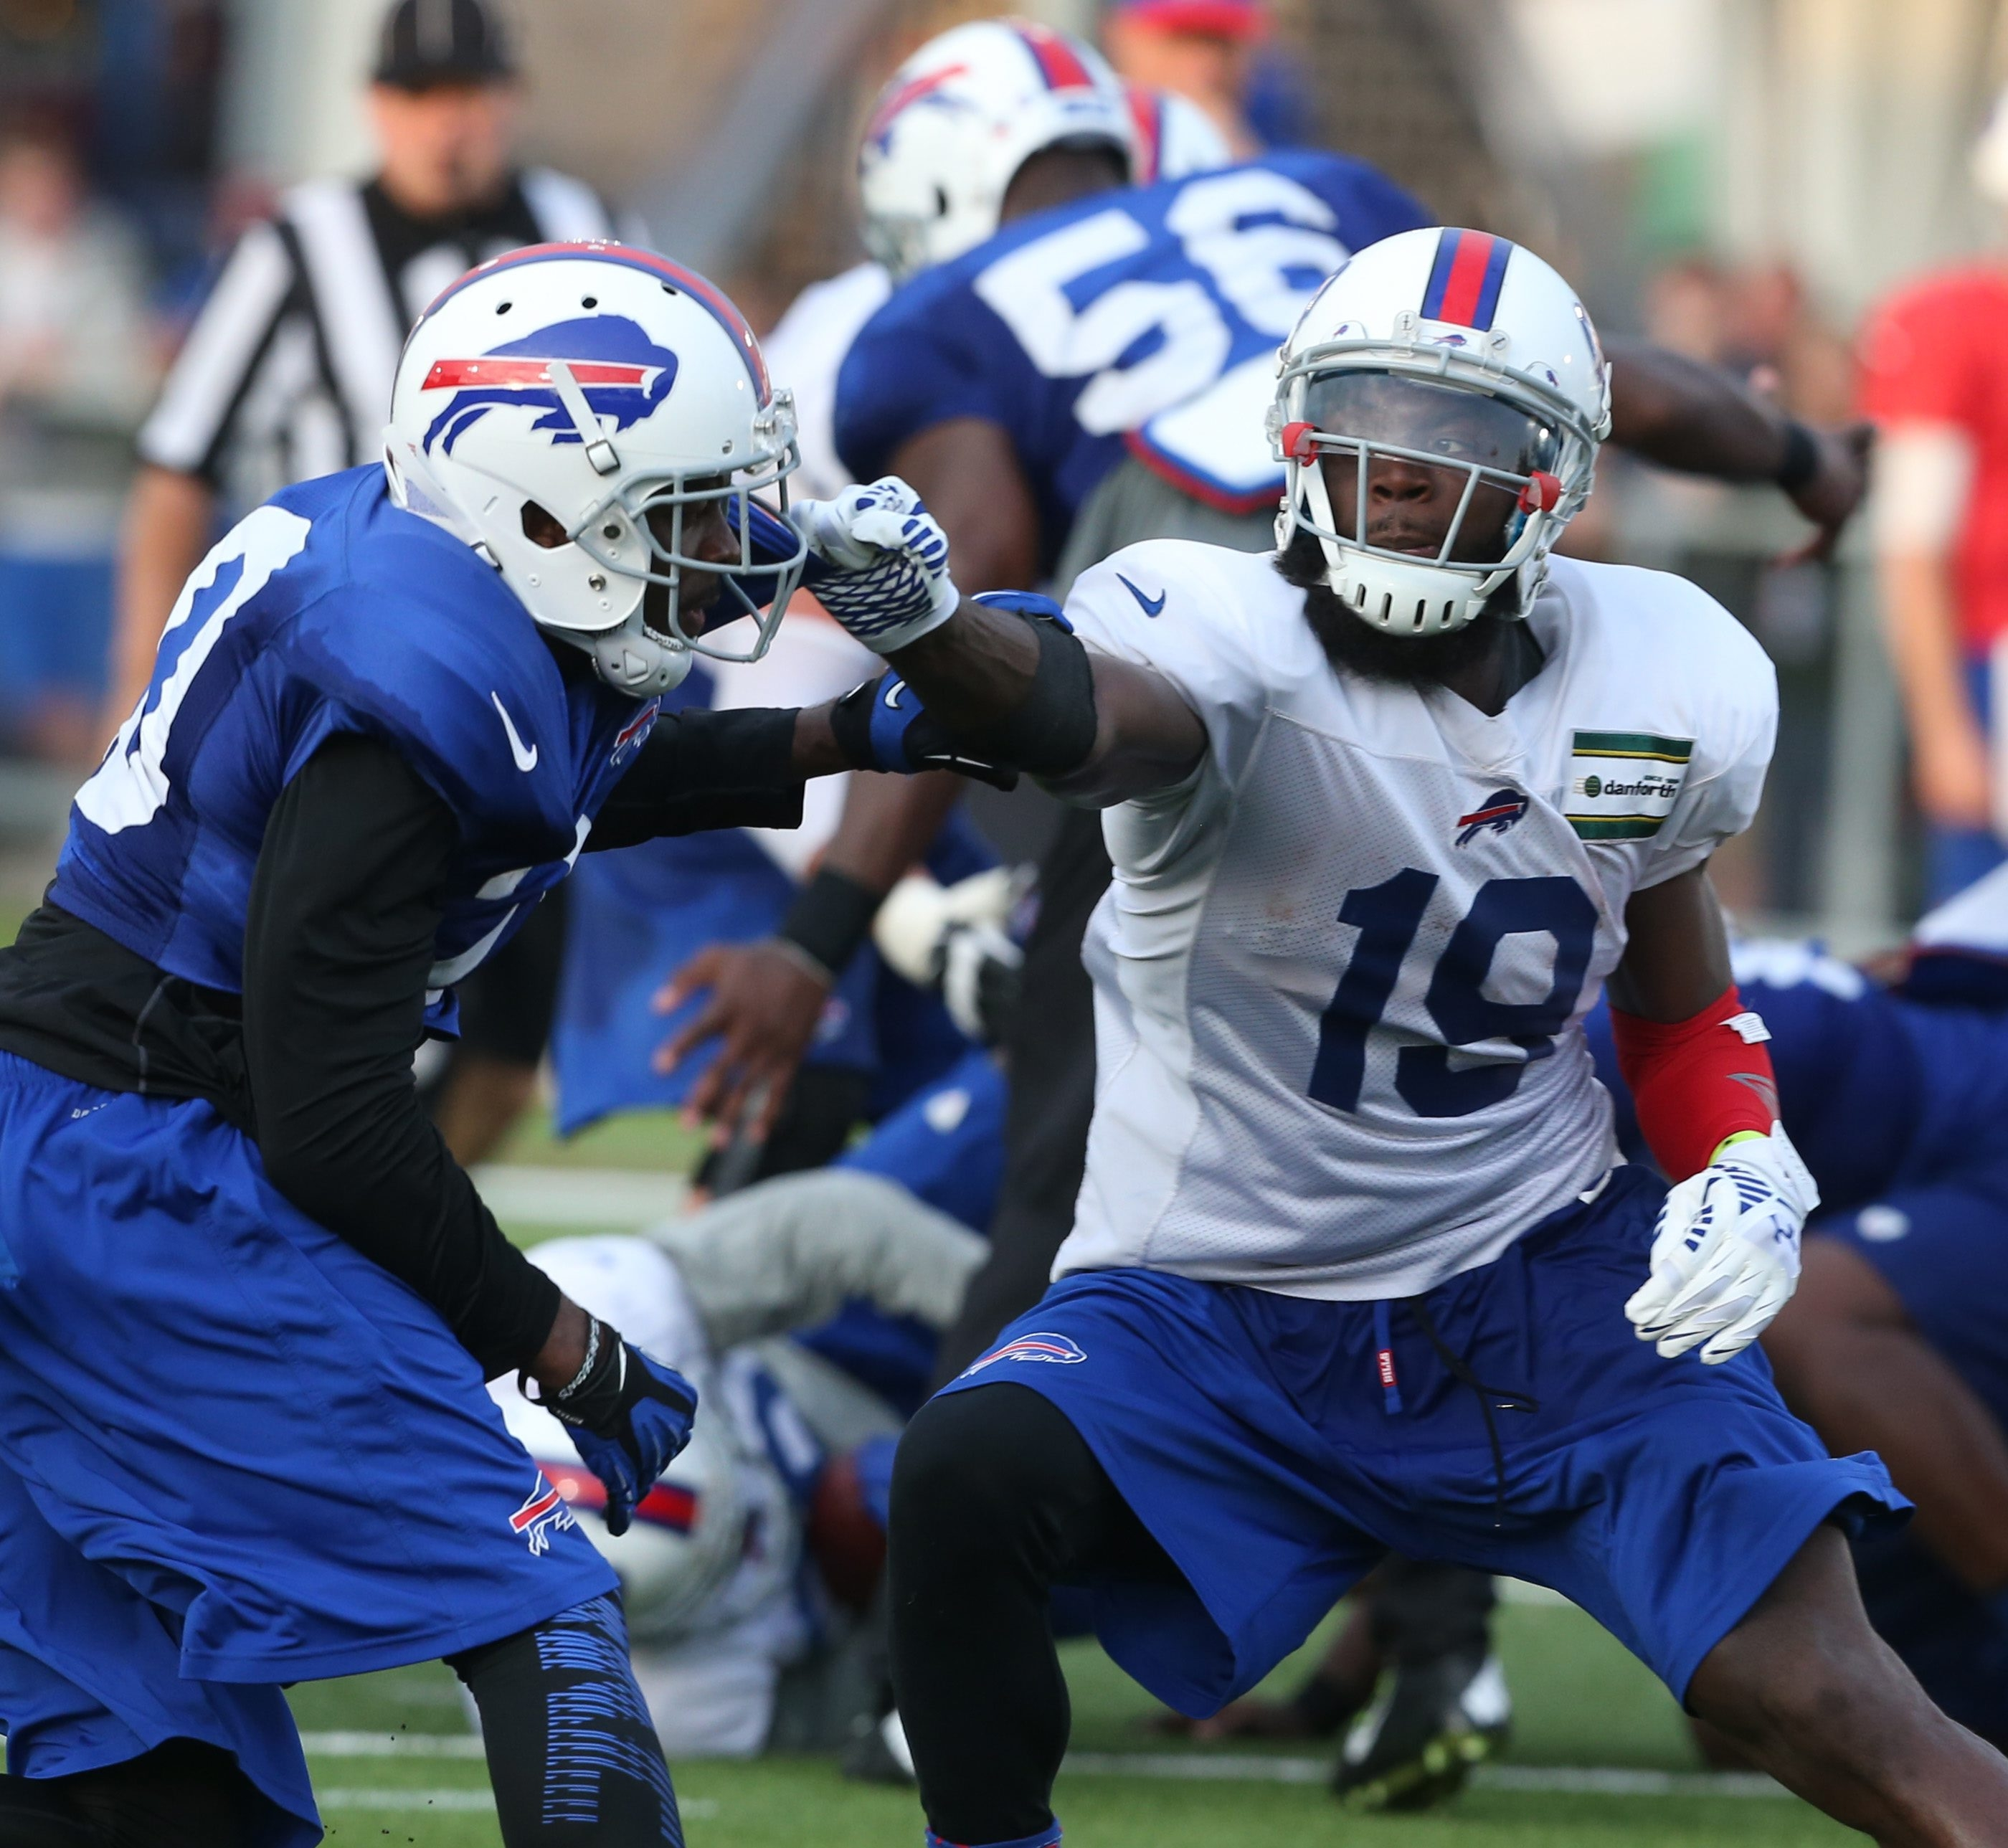 Bills receiver Mike Williams, right, blocks fellow Buffalo native Corey Graham during Tuesday's practice at St. John Fisher College.